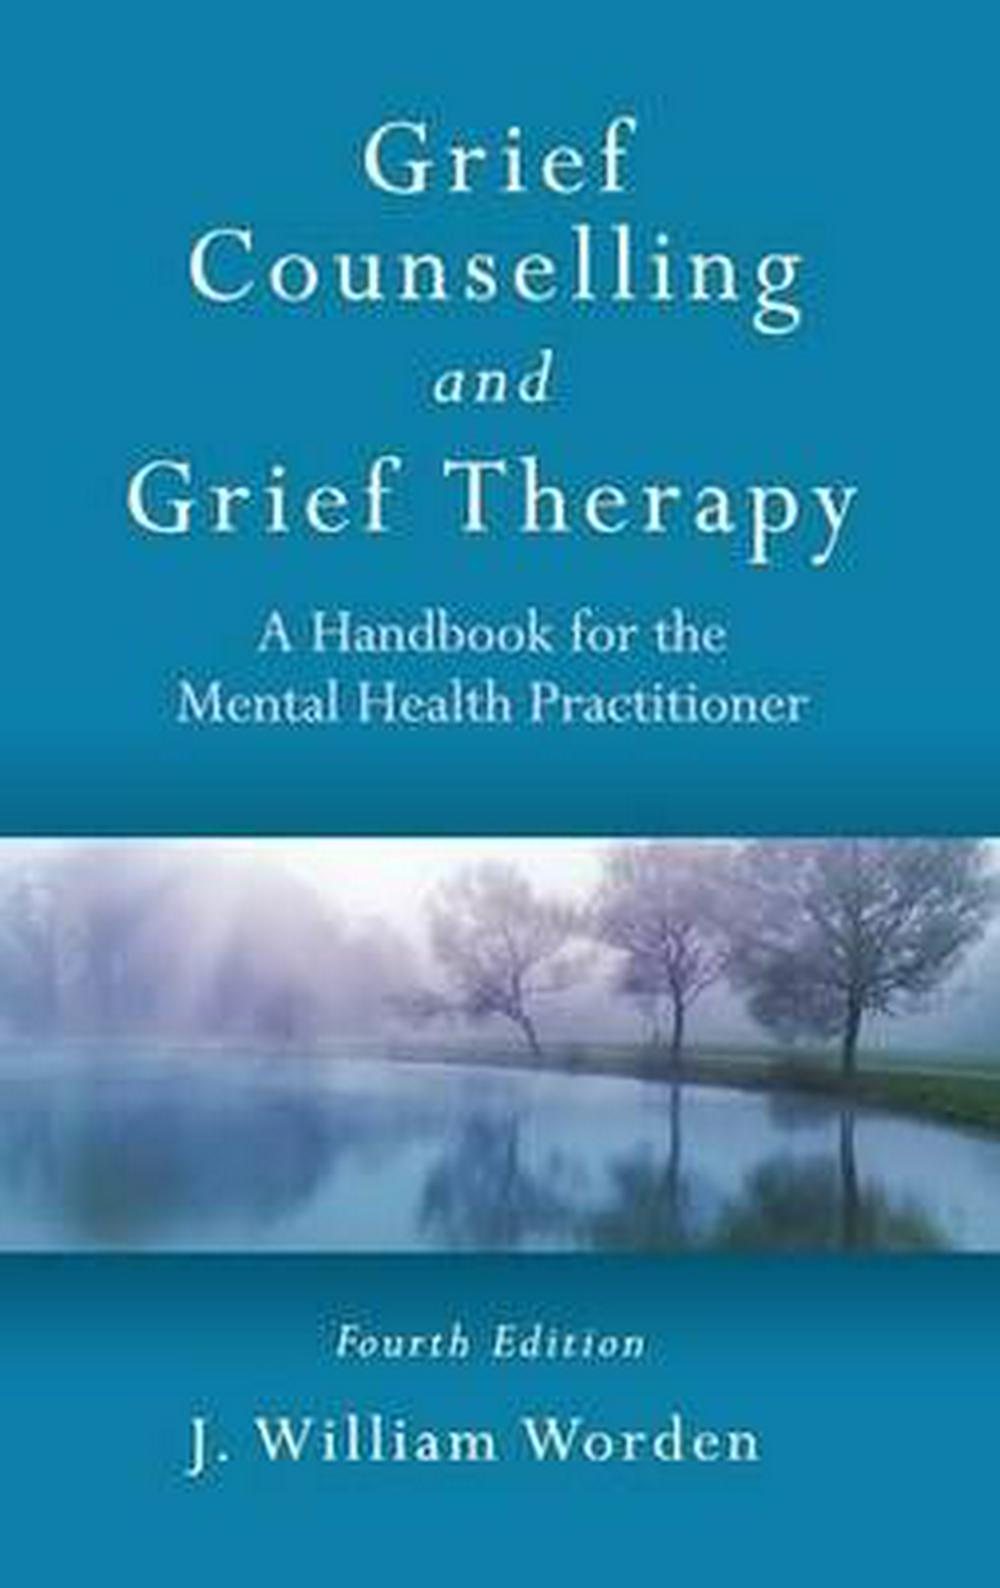 grief therapy by j william worden By j william worden in this resource the author describes the mechanisms of grief and the procedures for helping clients accomplish the tasks of mourning to facilitate moving through the process of normal grieving.